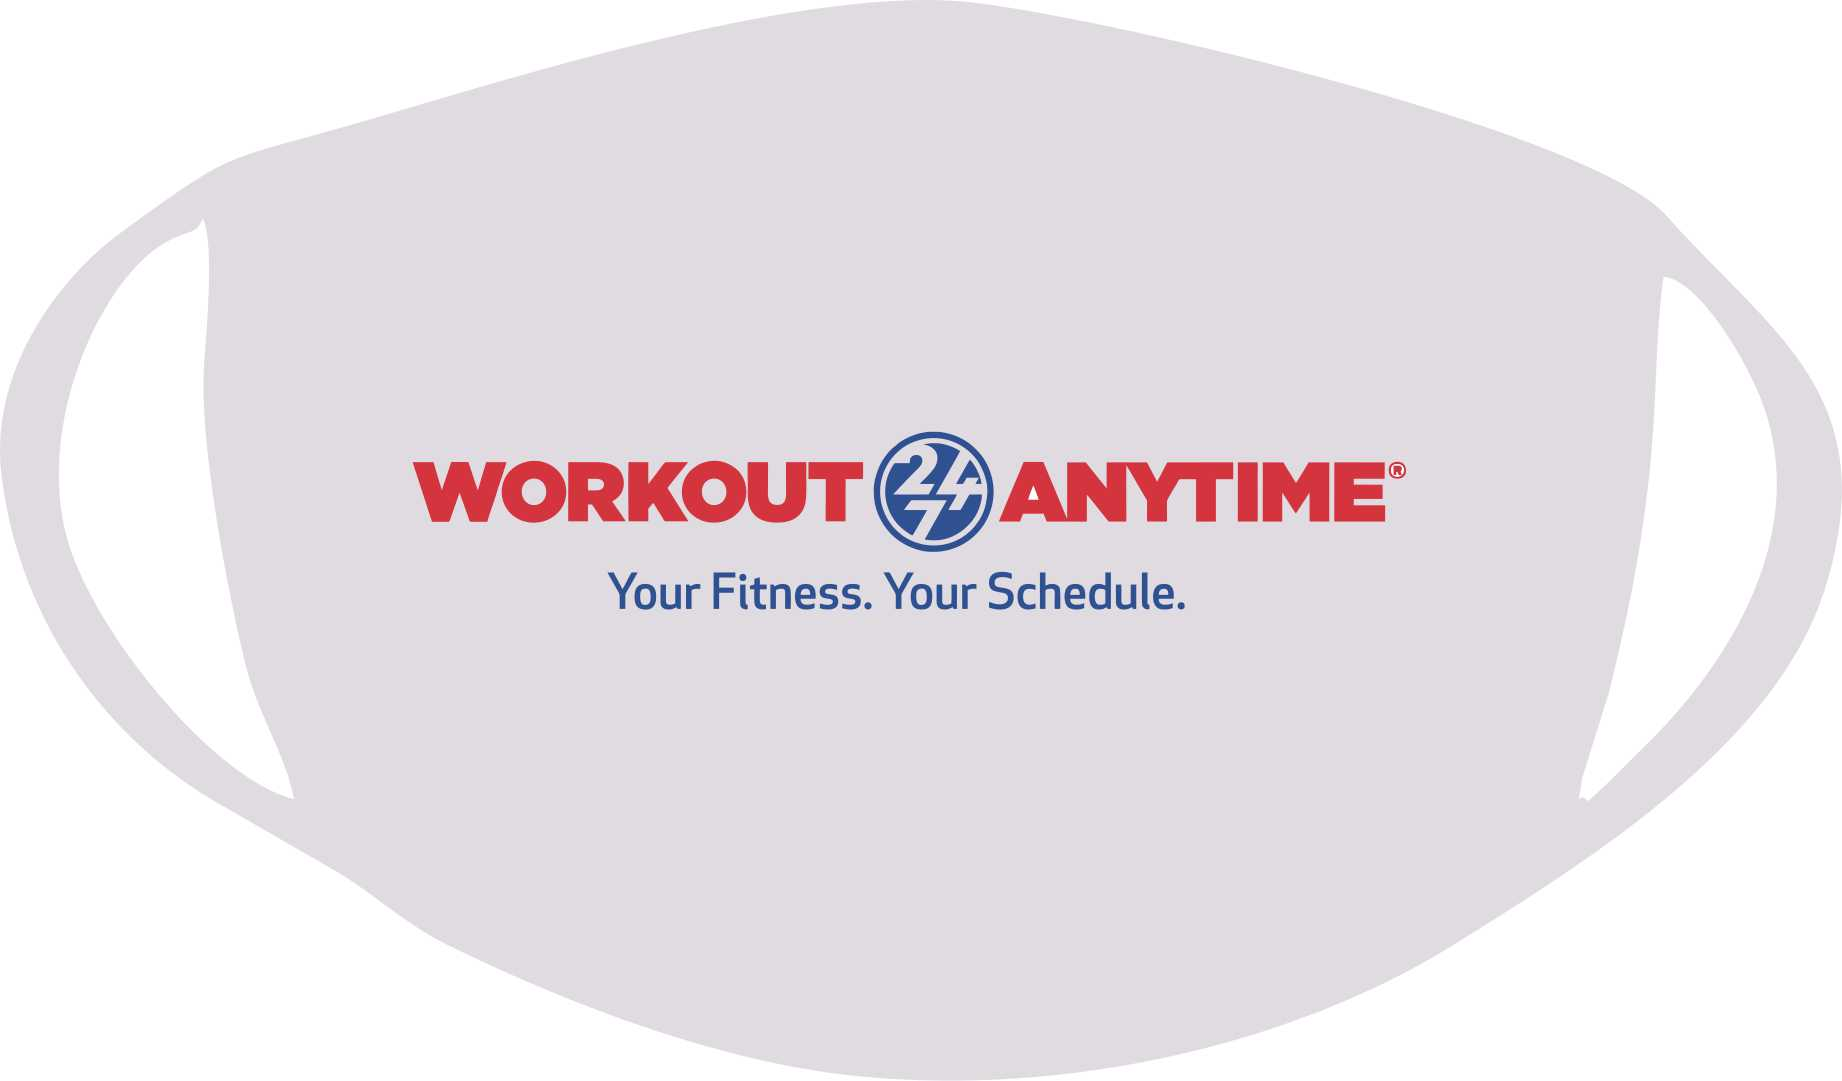 LONG LOGO WORKOUT ANYTIME 24/7 CUSTOM FACE COVER